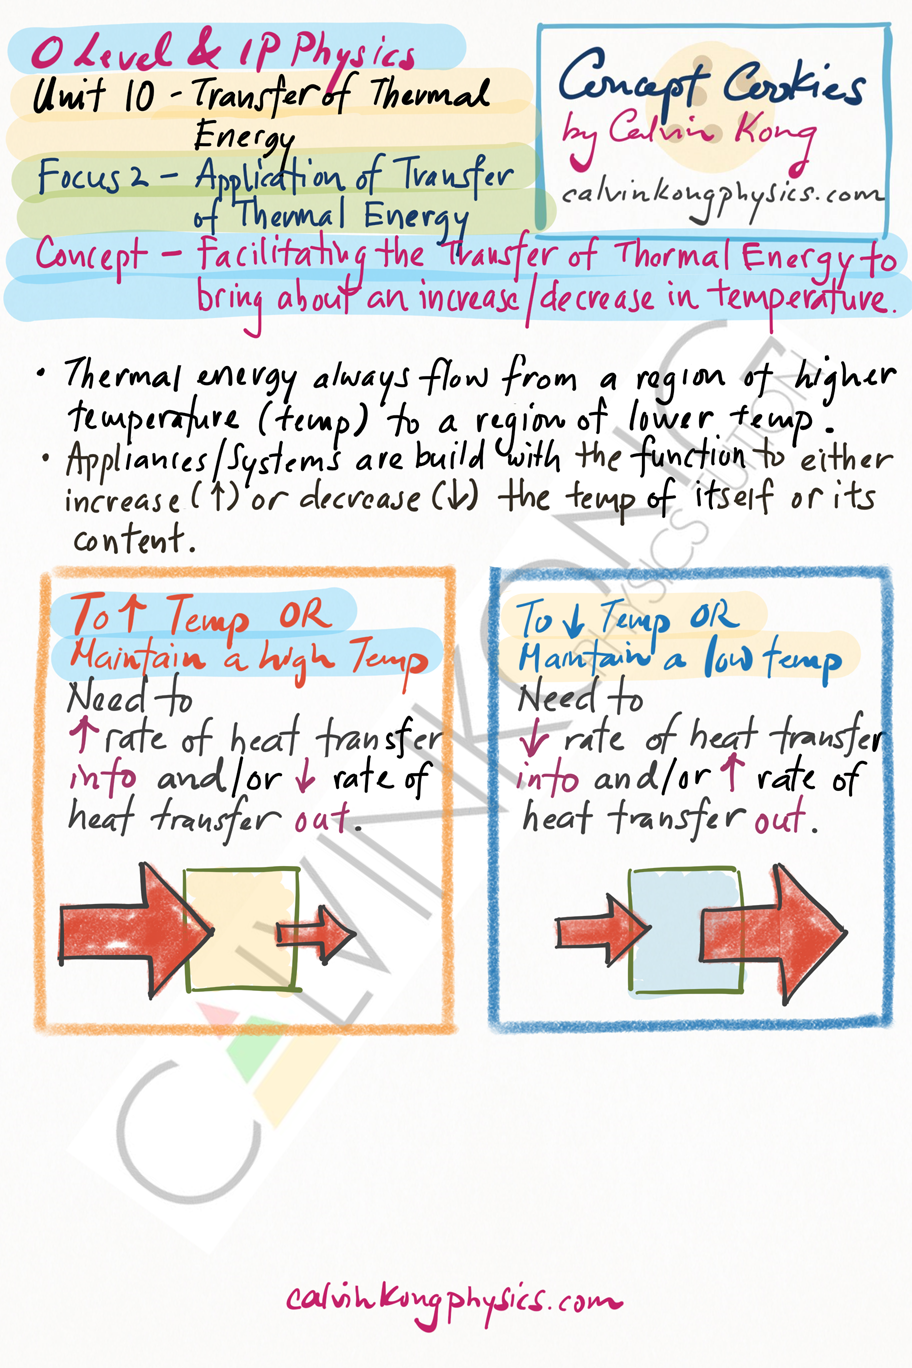 10. Transfer of Thermal Energy CC1 X.png